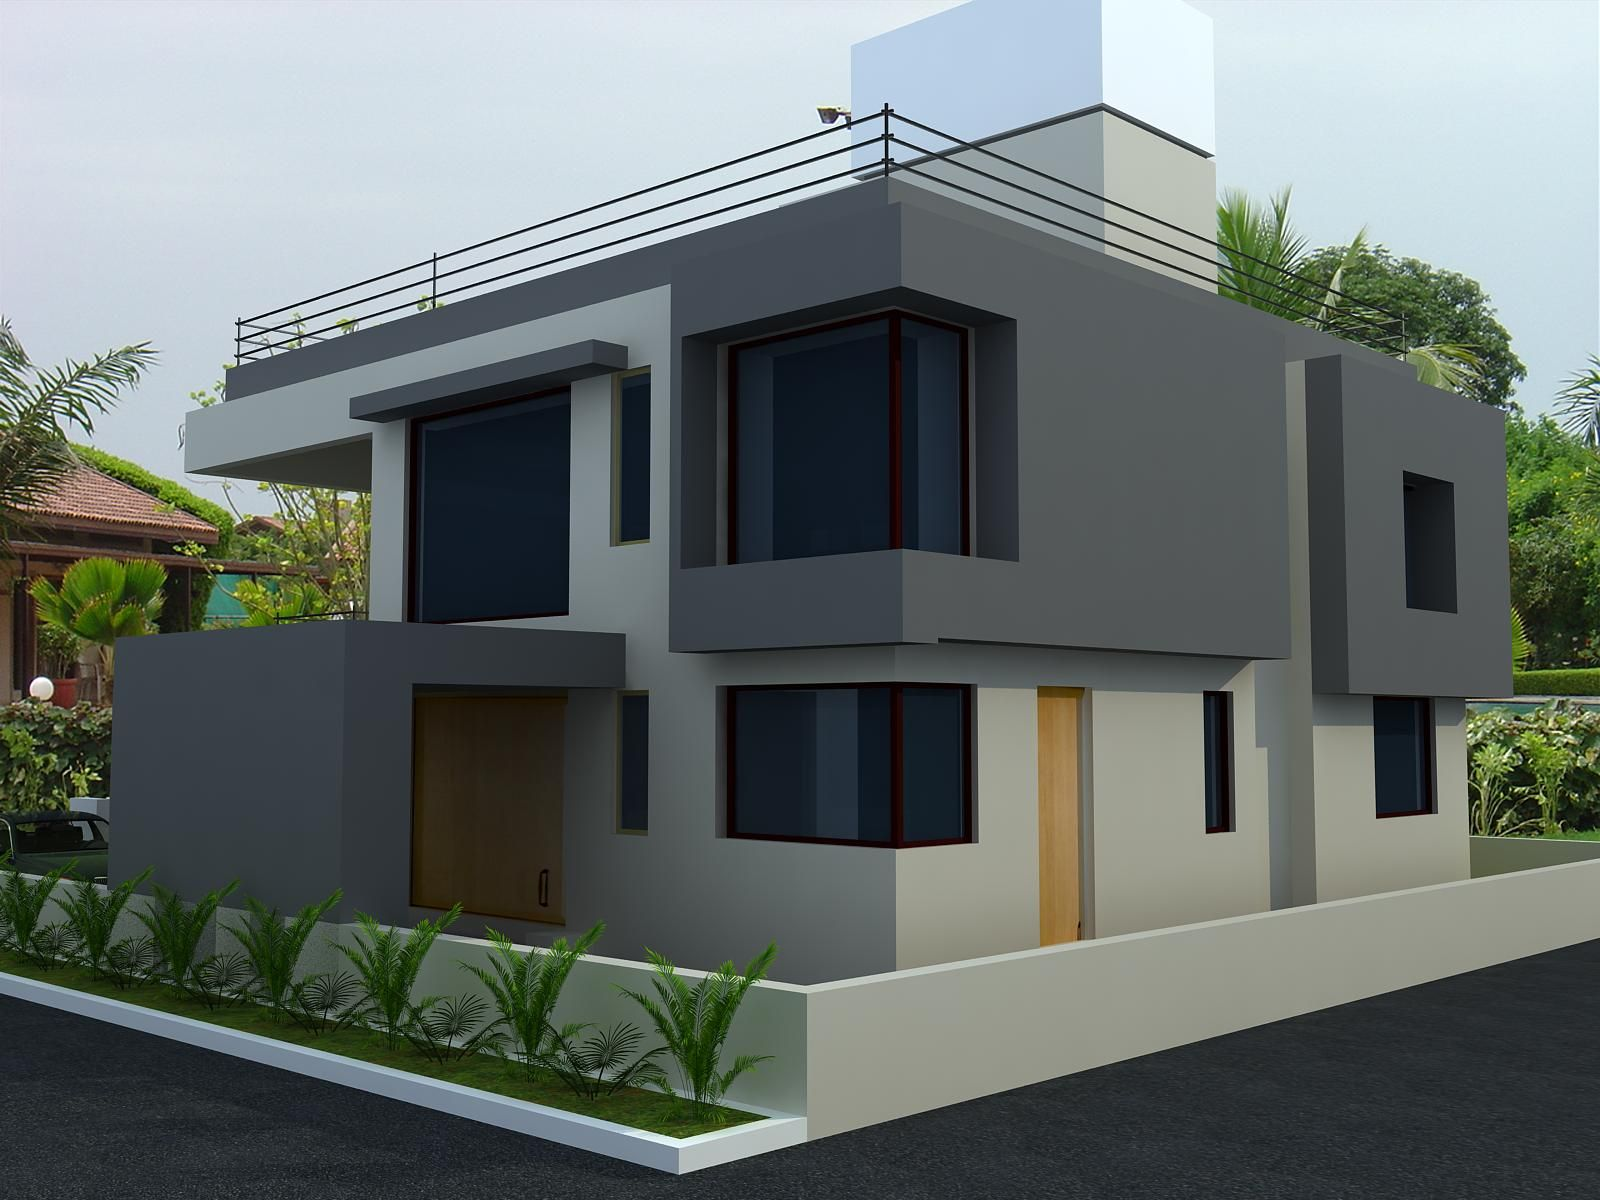 Architectural 3d model architectural 3d rendering for Exterior 3d model